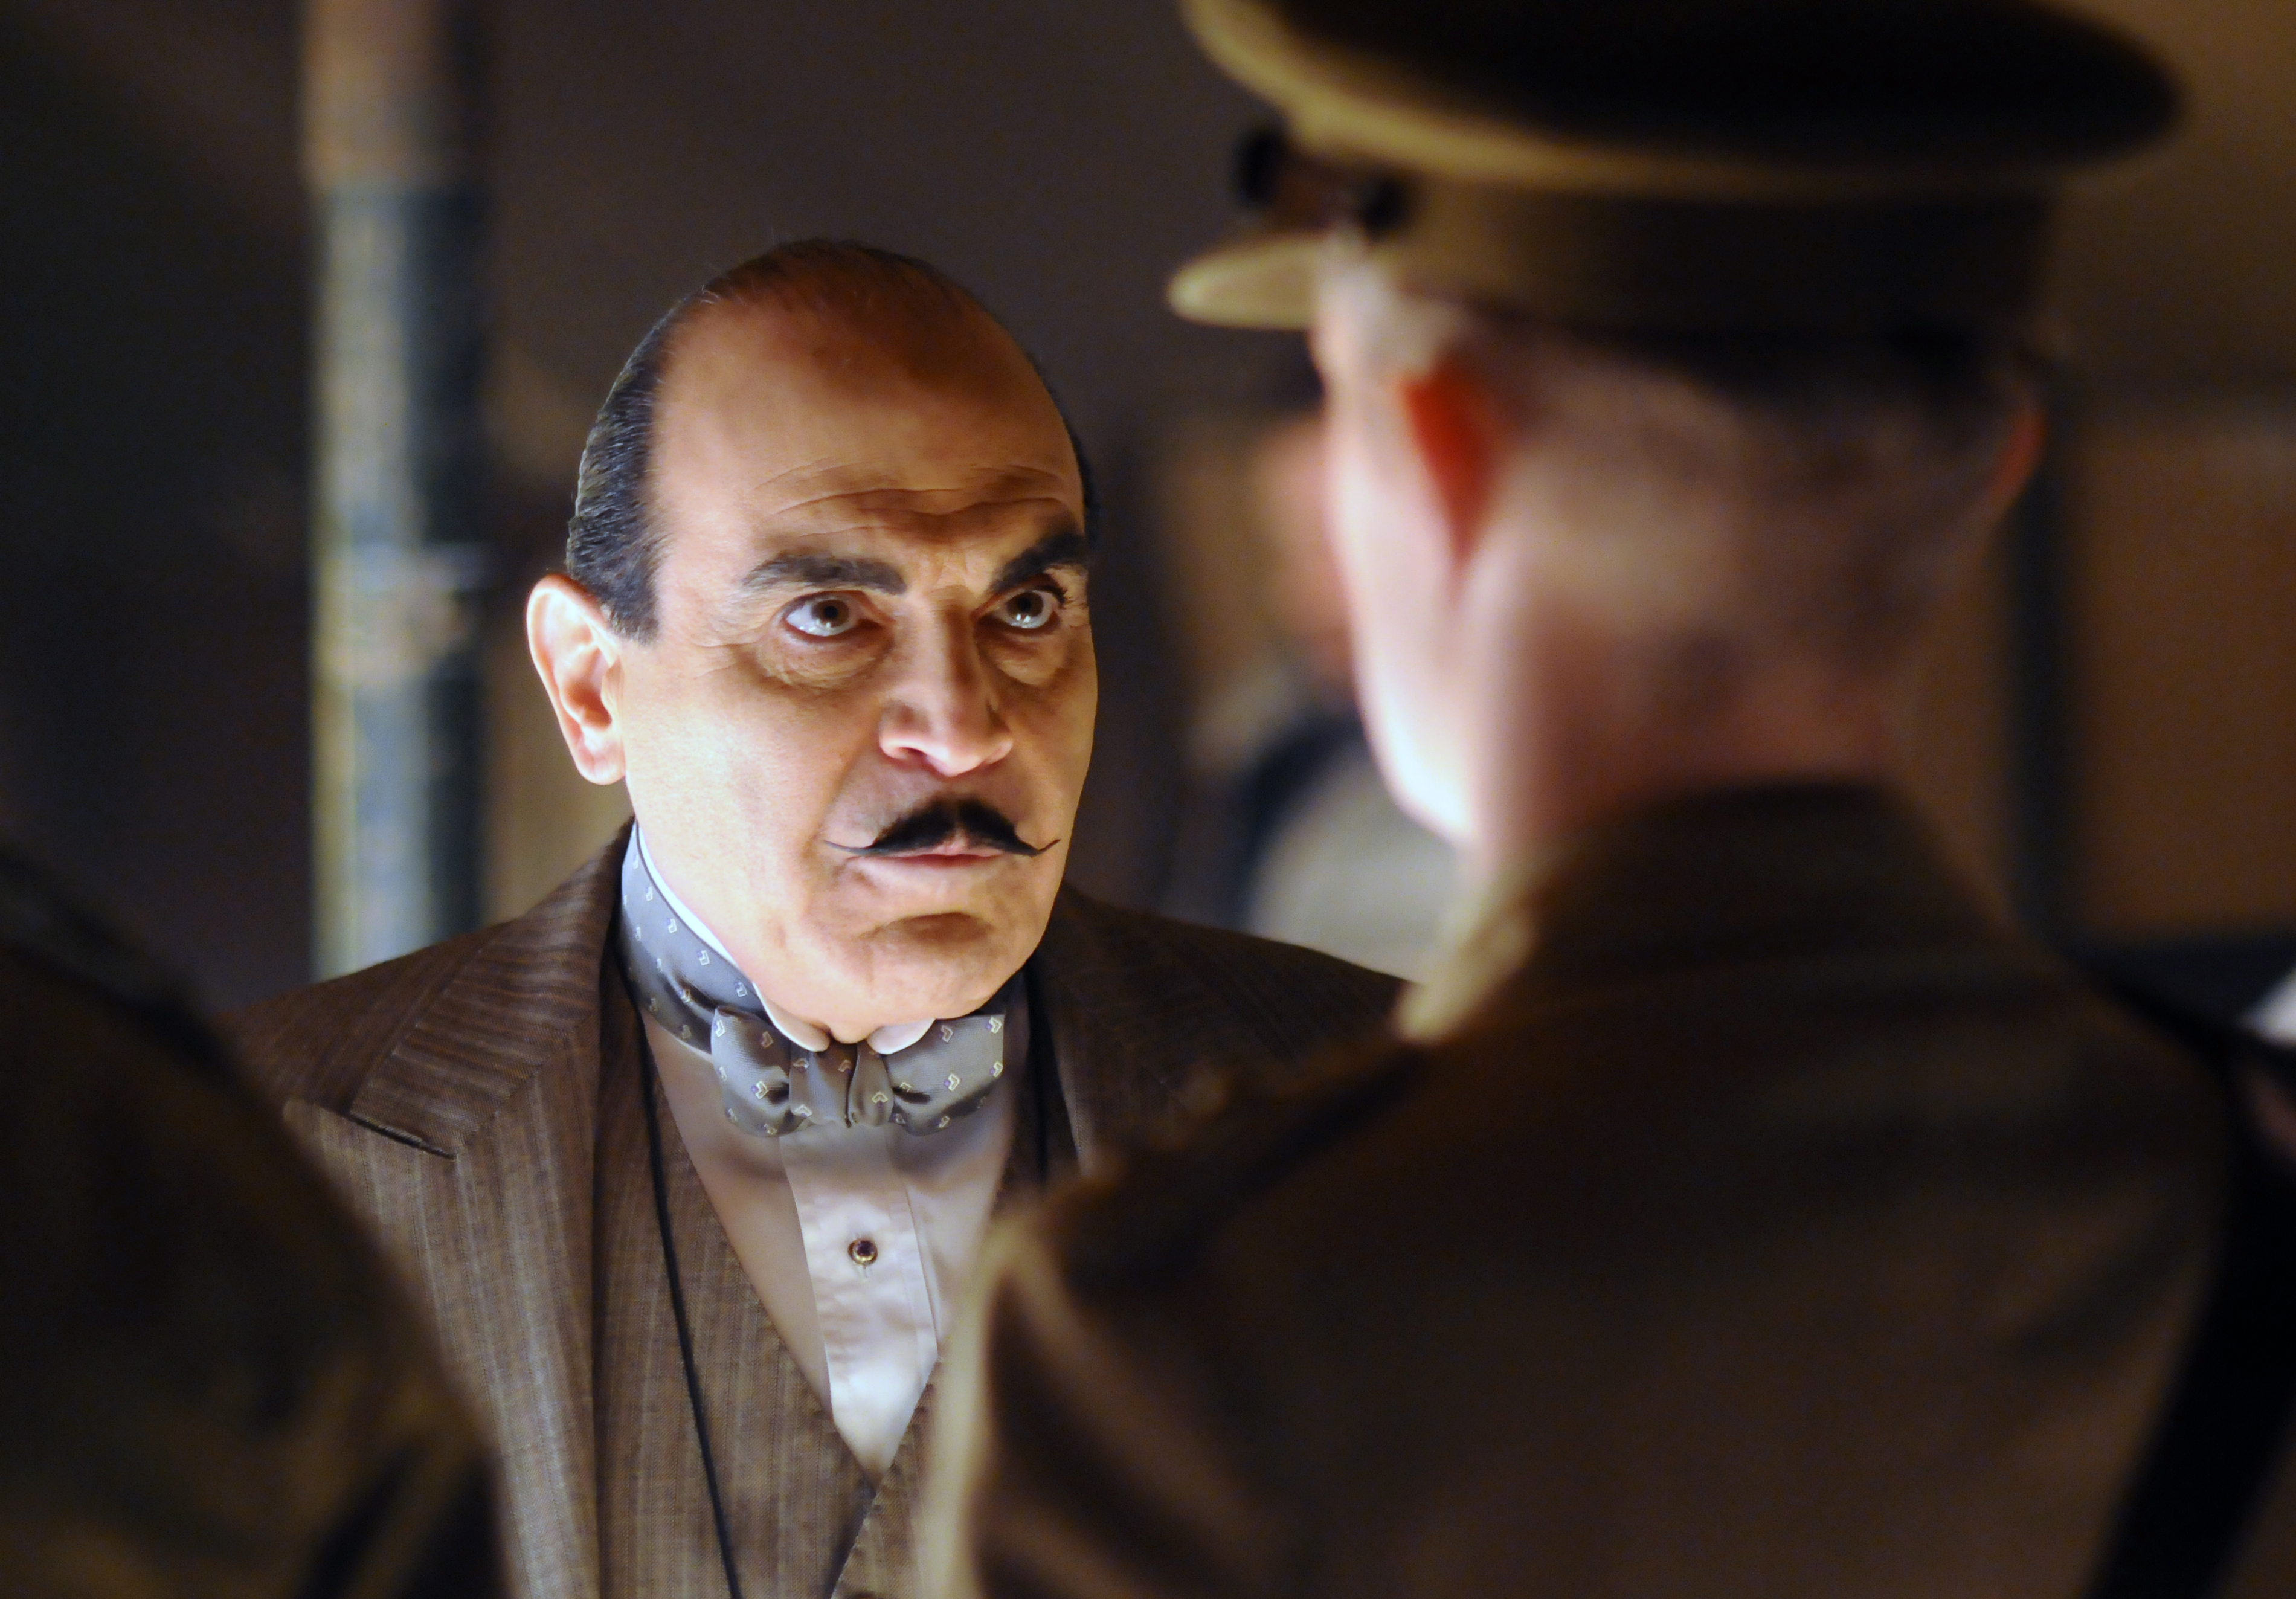 David suchet who has made the role of hercule poirot his own